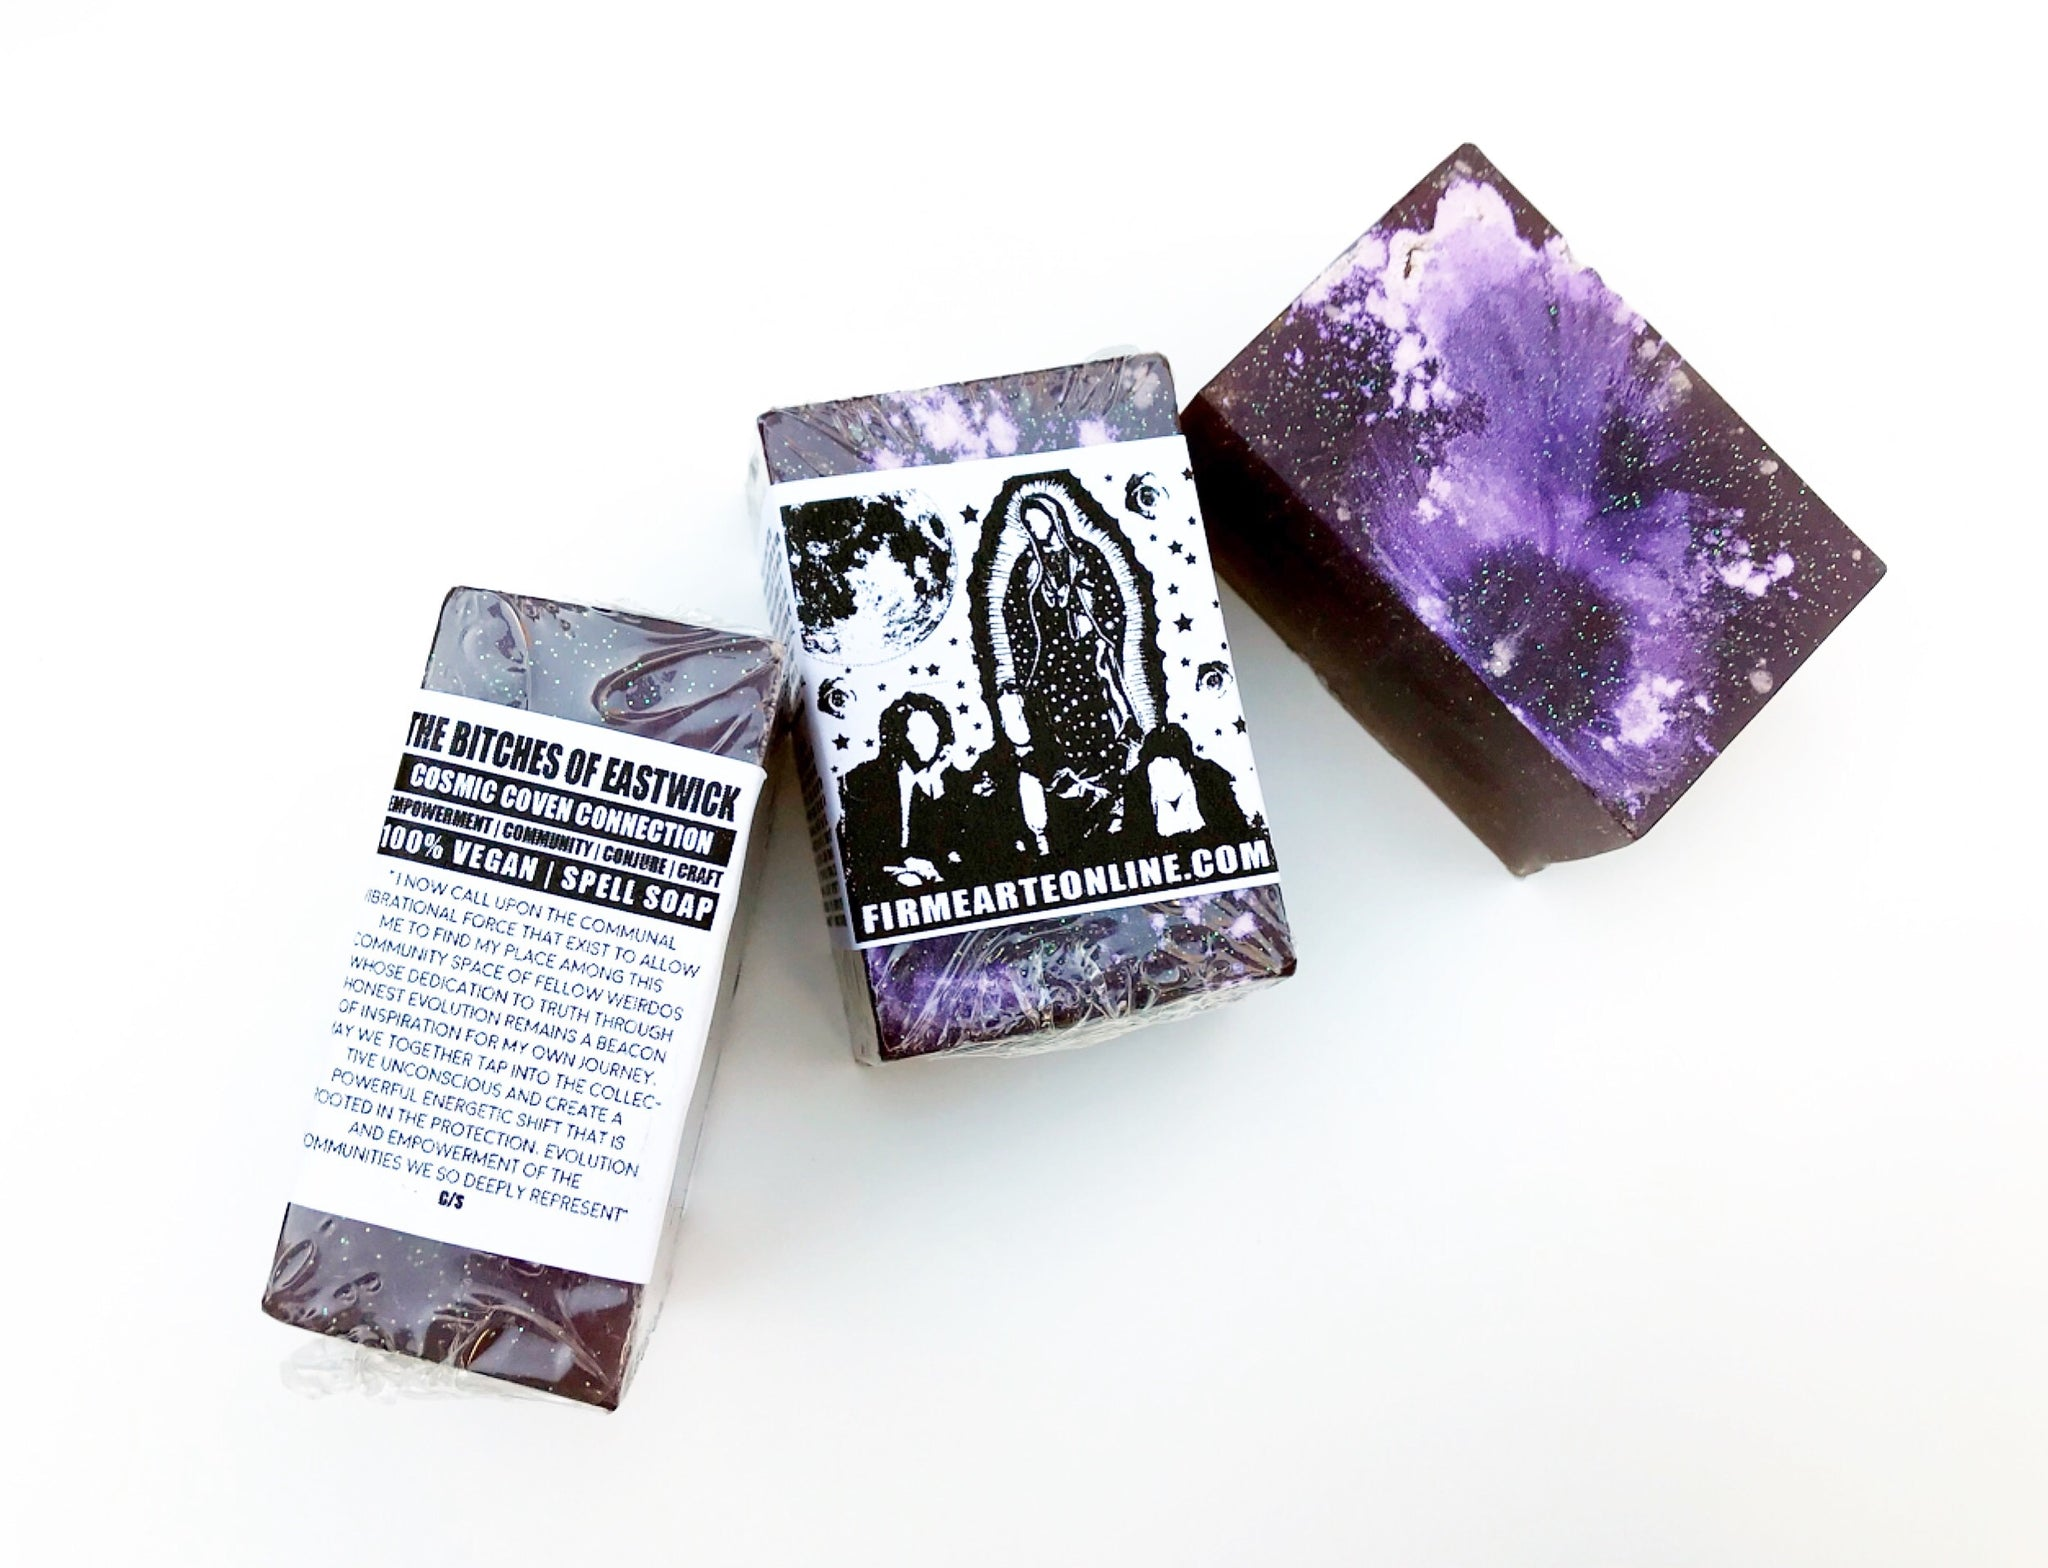 Spell Soap | The Bitches Of Eastwick | Cosmic Coven Connection